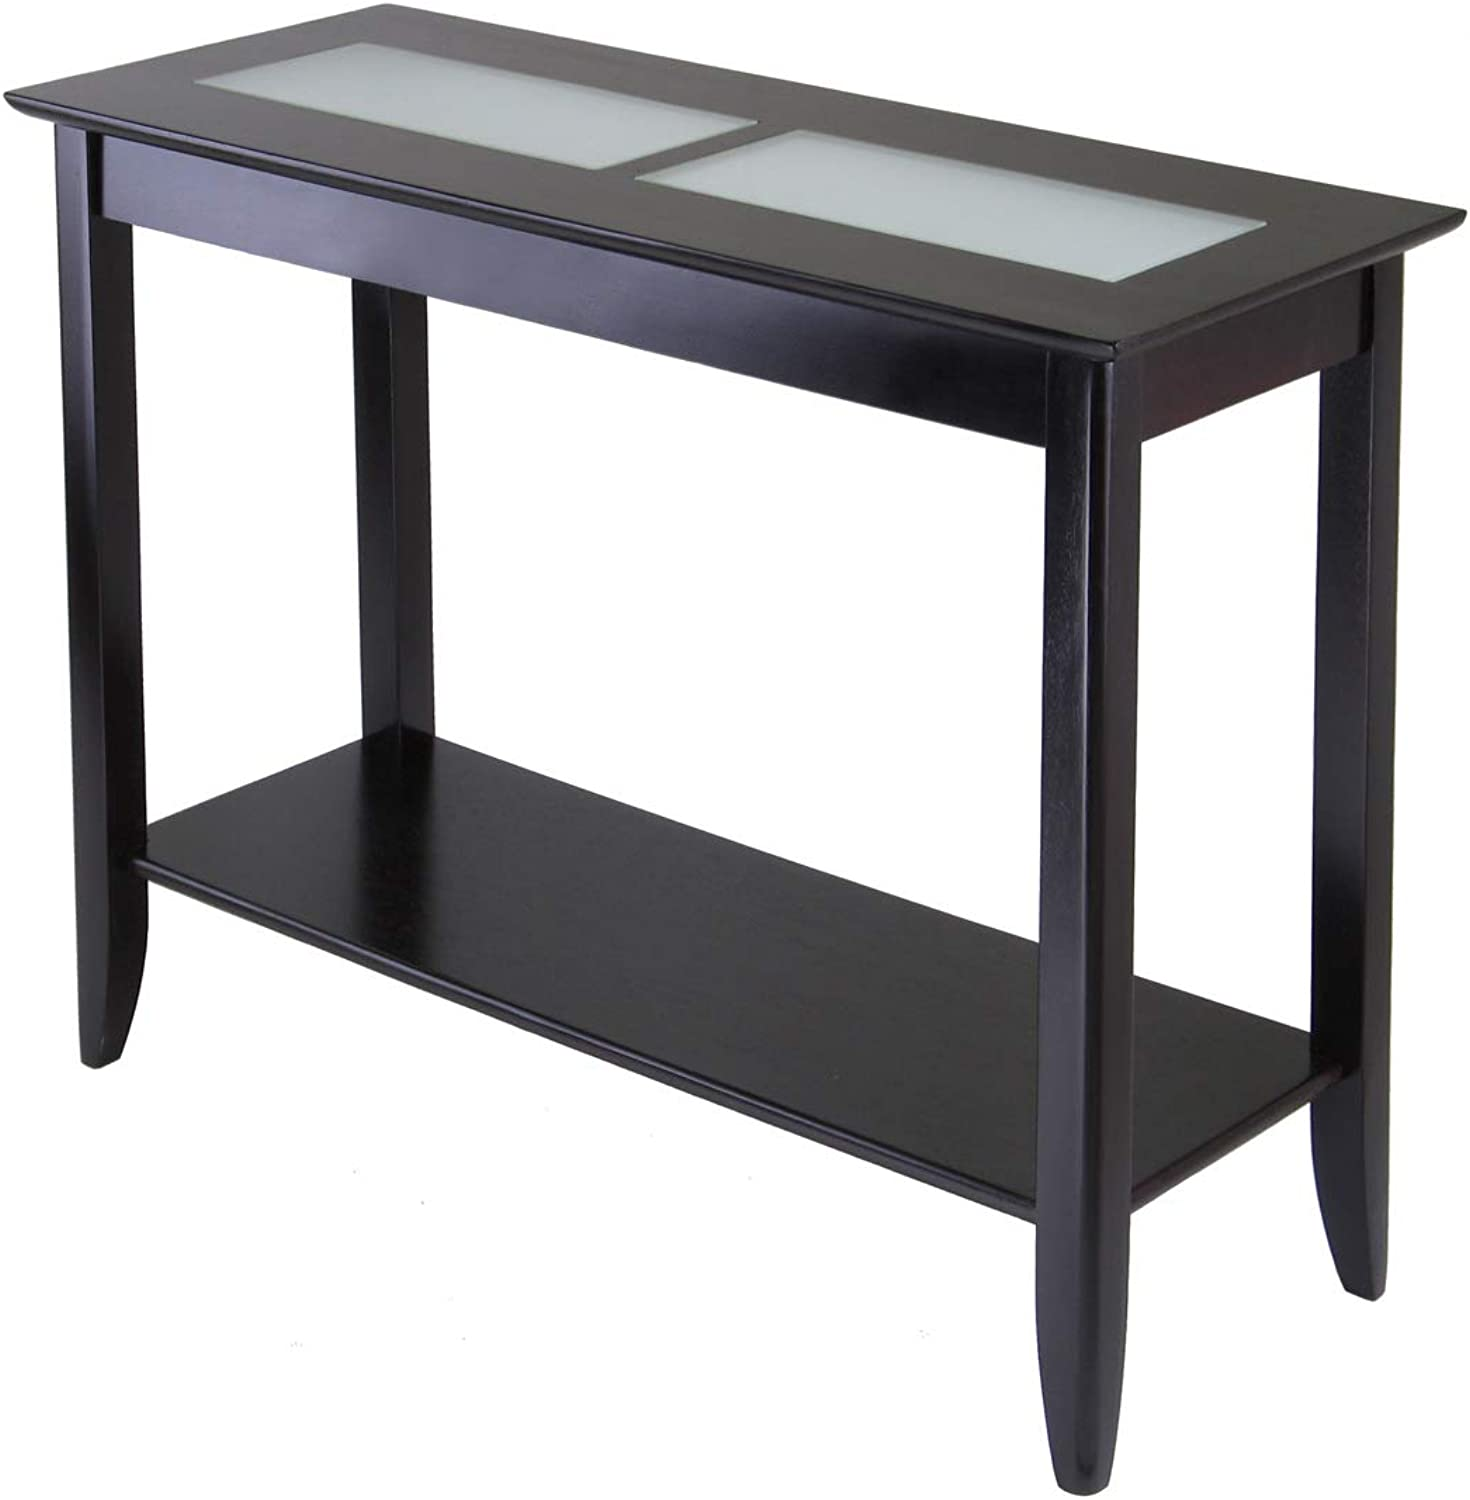 Winsome Wood Syrah Hall Table with Frosted Glass, Shelf